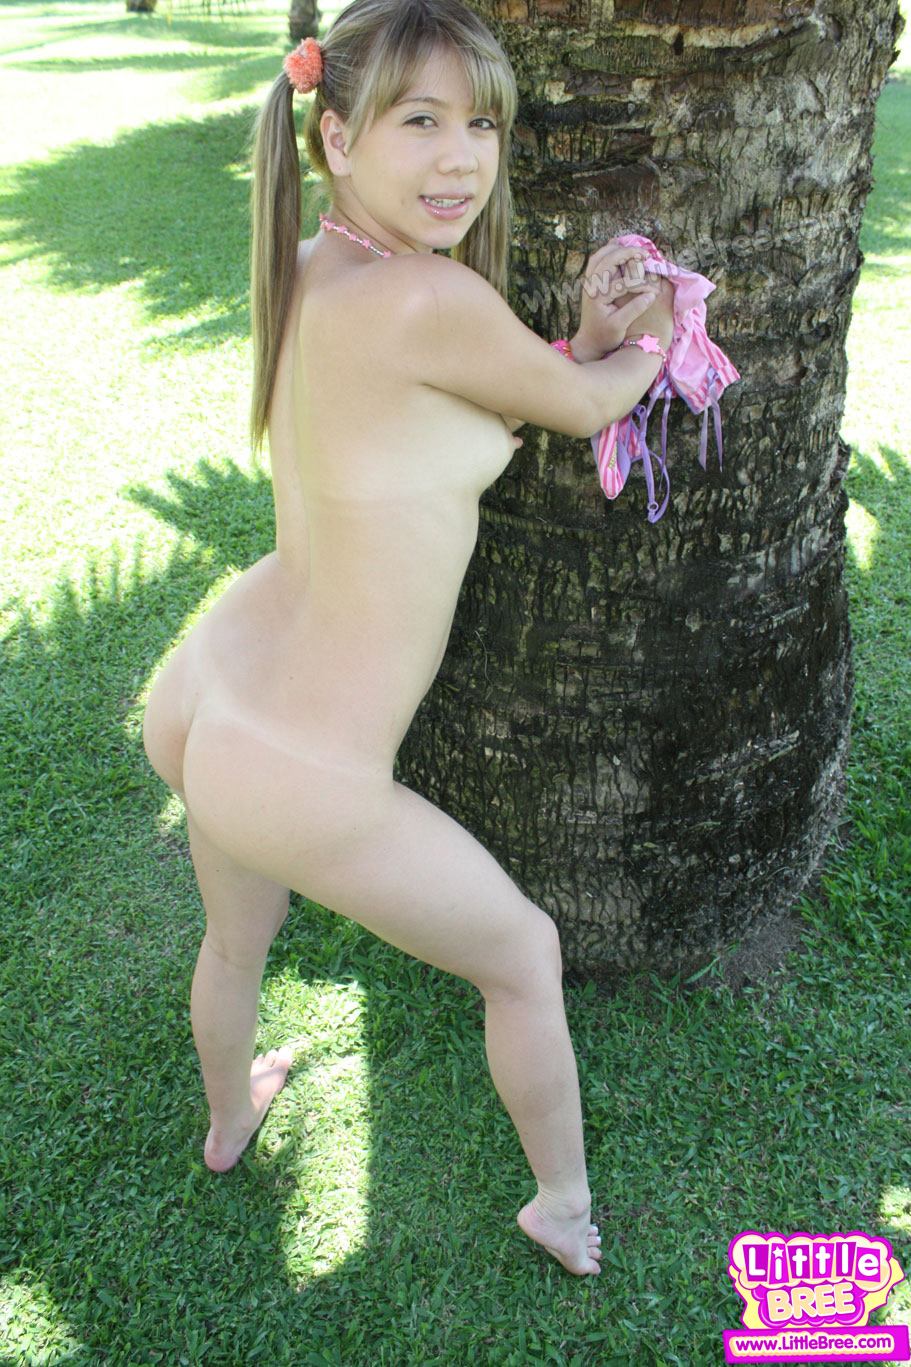 What ass Nudist tiny tight legal SIMPLY FUCKING AMAZING